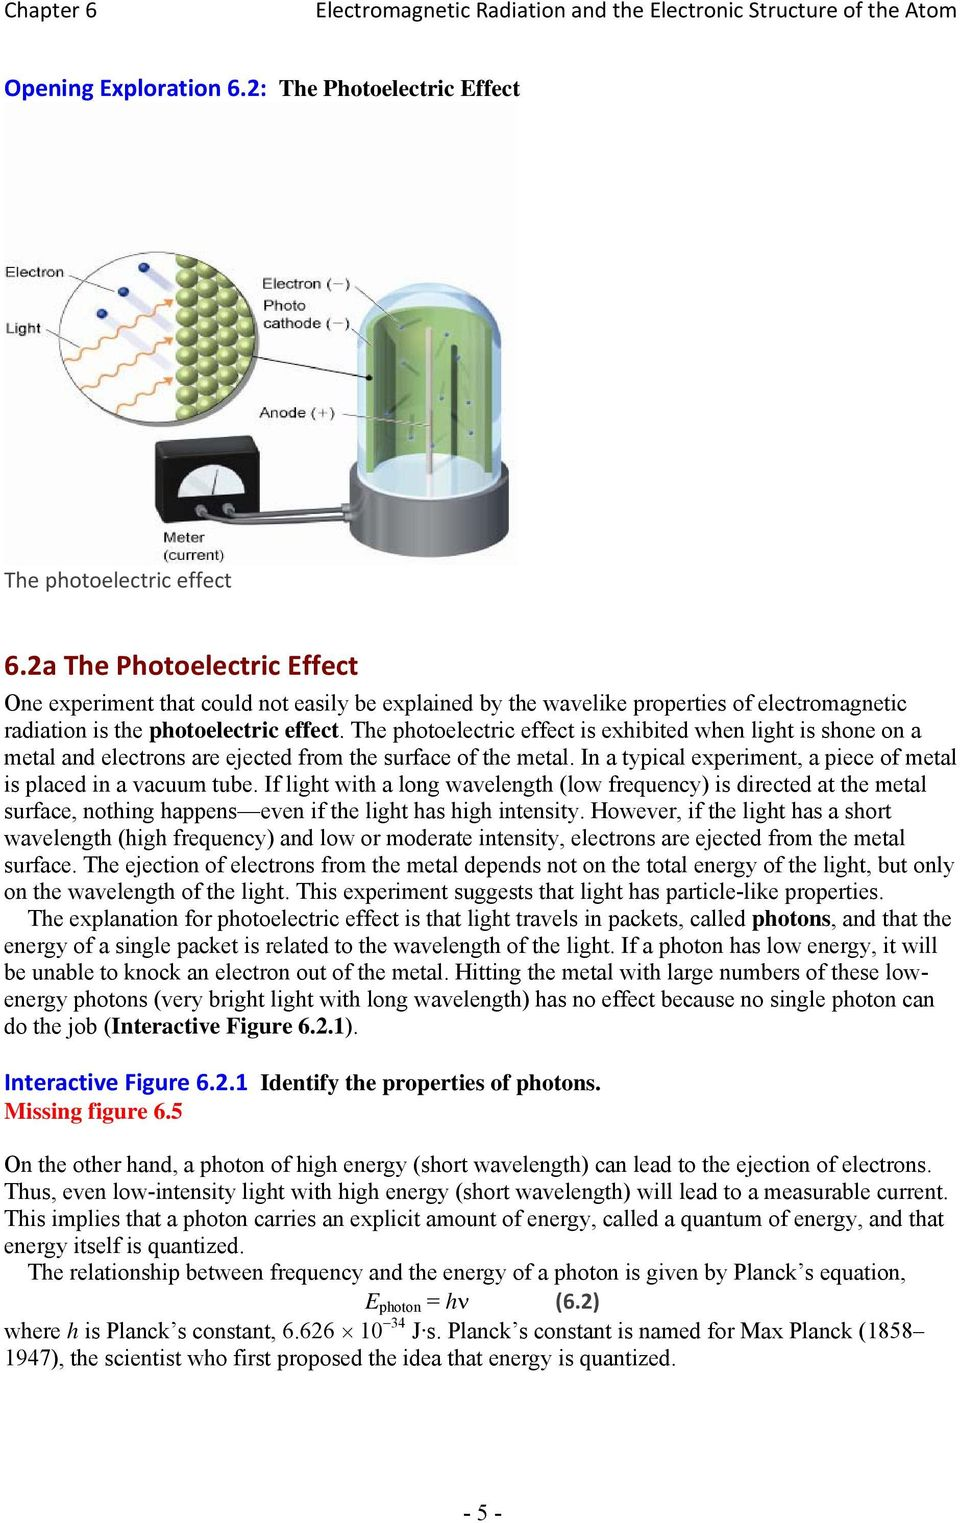 The photoelectric effect is exhibited when light is shone on a metal and electrons are ejected from the surface of the metal. In a typical experiment, a piece of metal is placed in a vacuum tube.